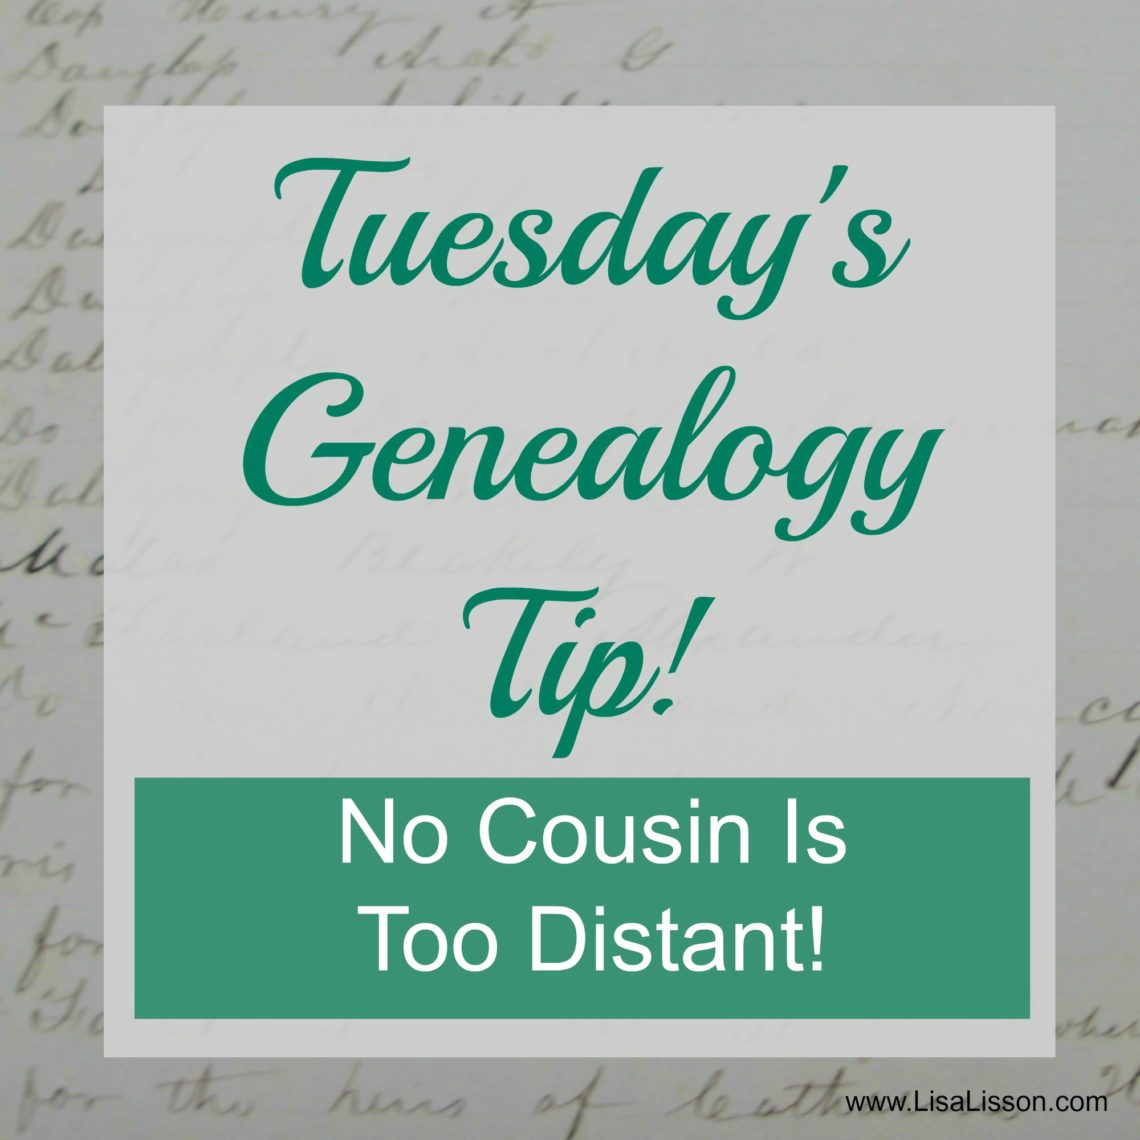 Tuesday's Genealogy Tip - No Cousin is Too Distant